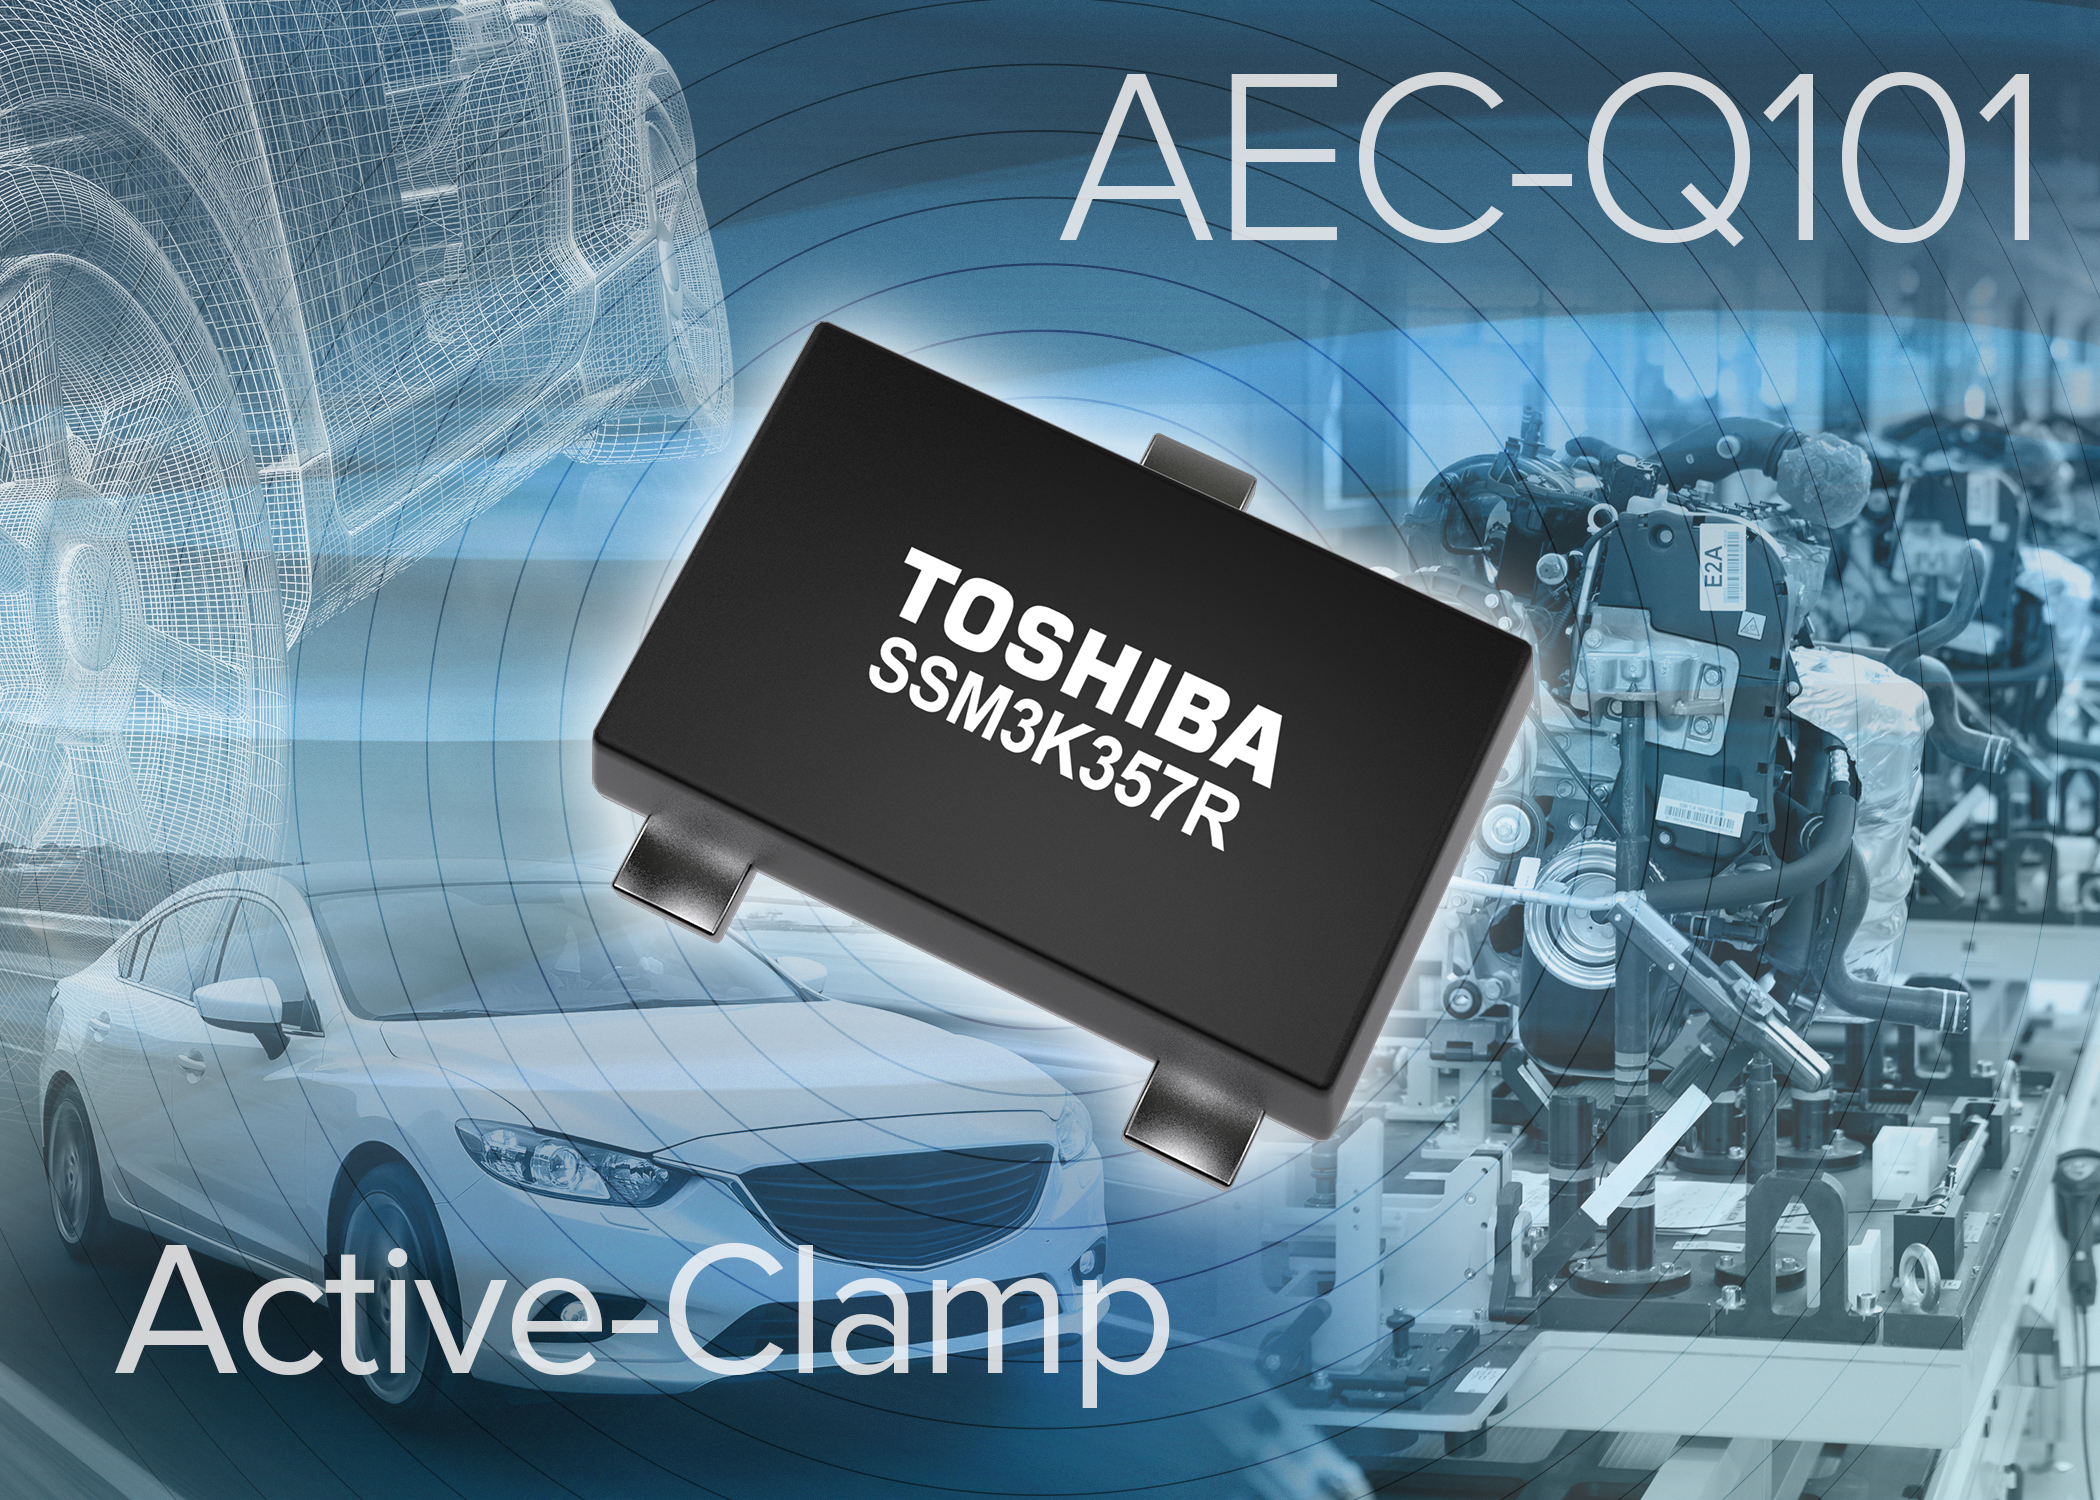 Toshiba Launches active-clamp MOSFET series for relay drivers